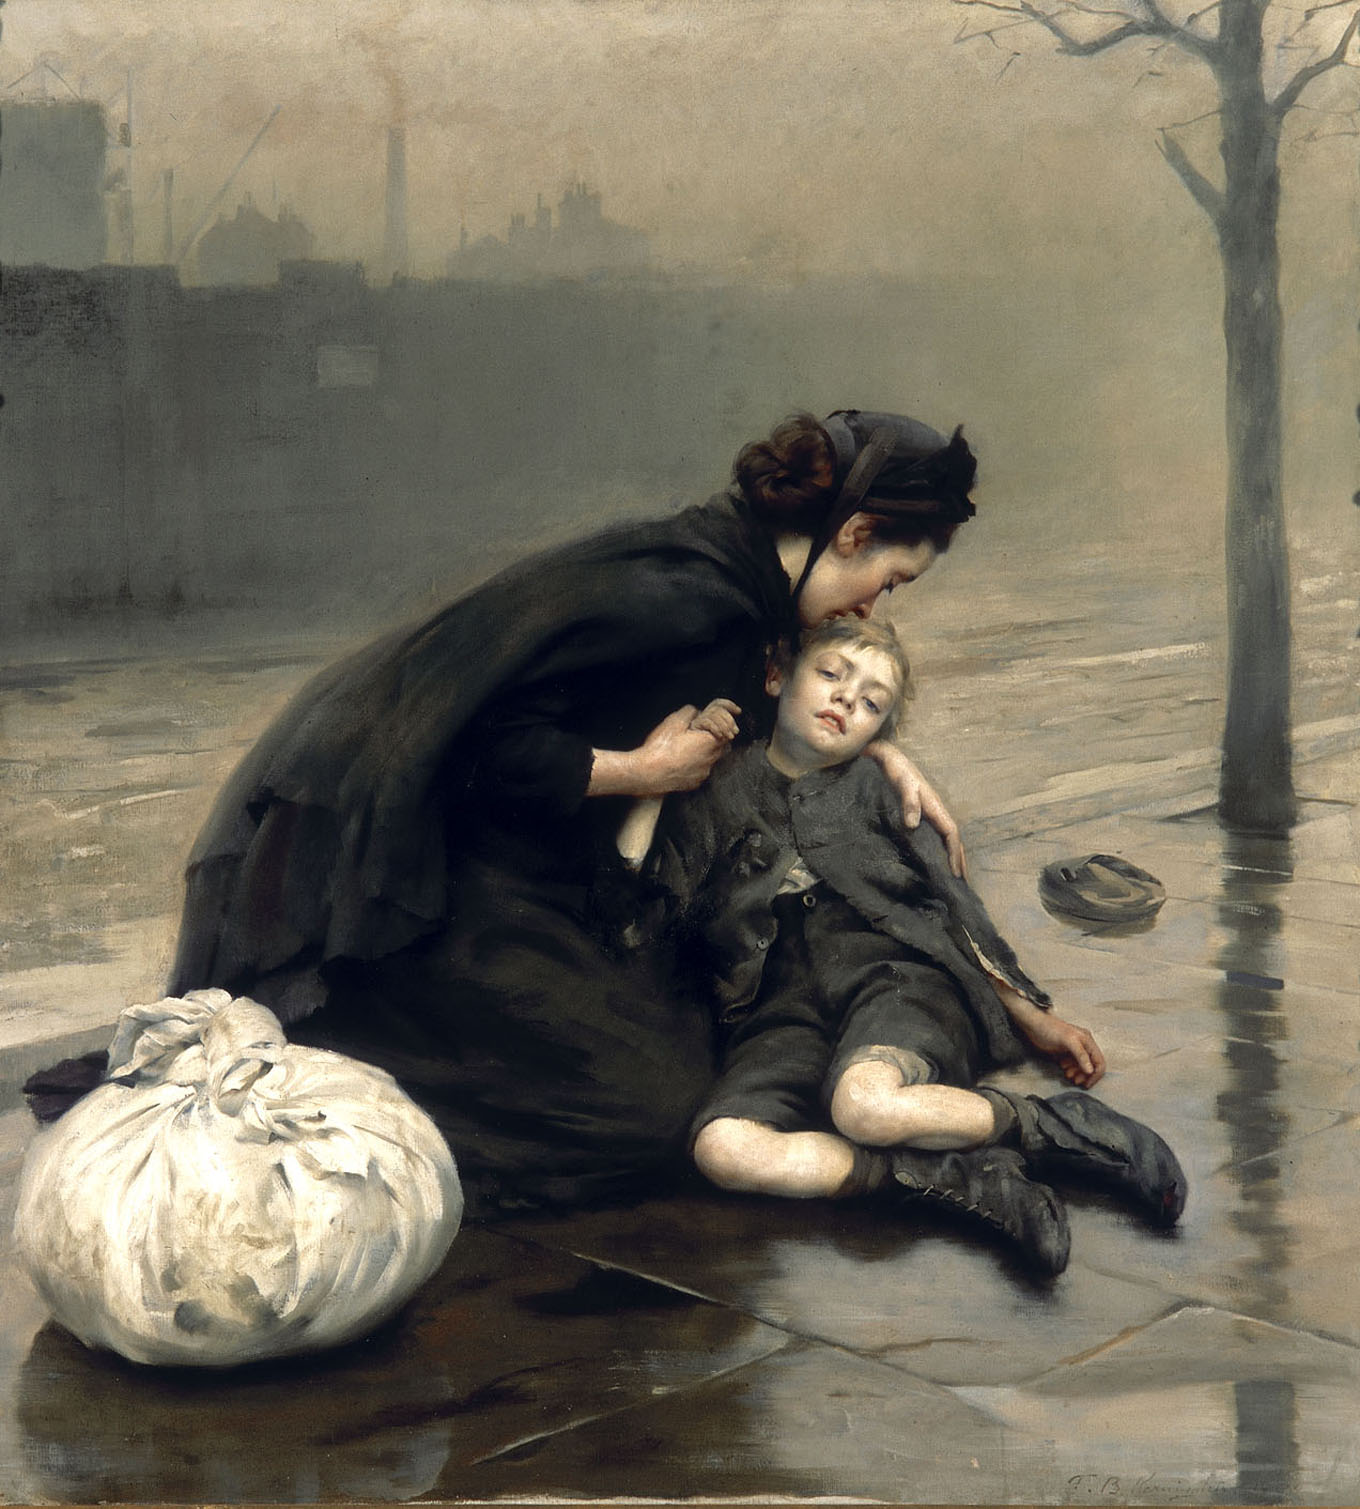 https://upload.wikimedia.org/wikipedia/commons/7/7c/Thomas_Kennington_-_Homeless_%281890%29.jpg